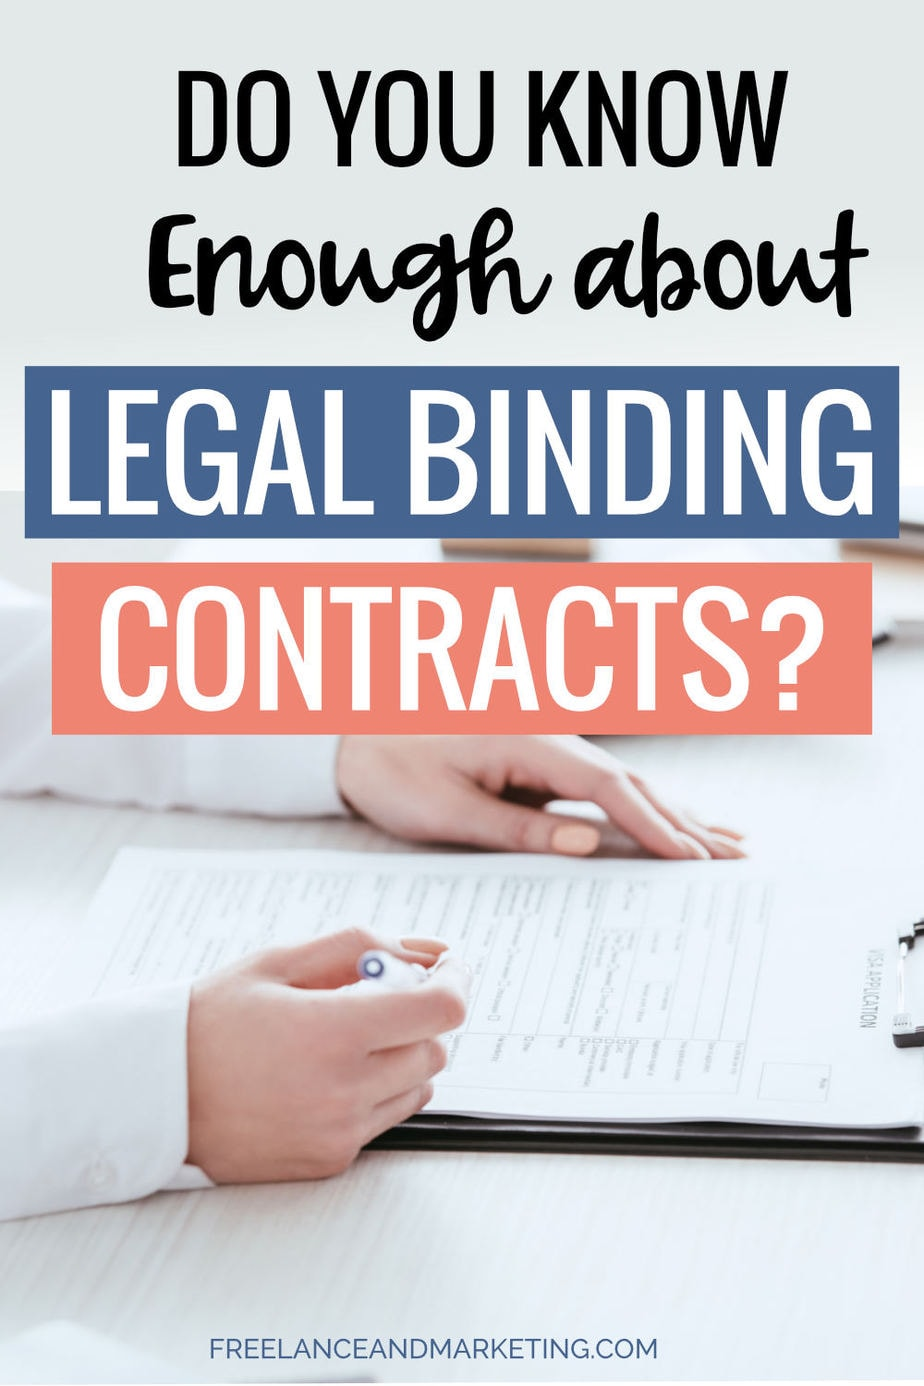 As a small business owner or entrepreneur, you must know what a legal binding contract is. You should learn the necessary elements to form a valid contract that is enforceable in court. Protect your small business or online venture from trouble. Create contracts with other parties that are fair and safe for you and everyone else involved. #smallbusiness #entrepreneur #contract #validcontract #legalbindingcontract #businessowner #business